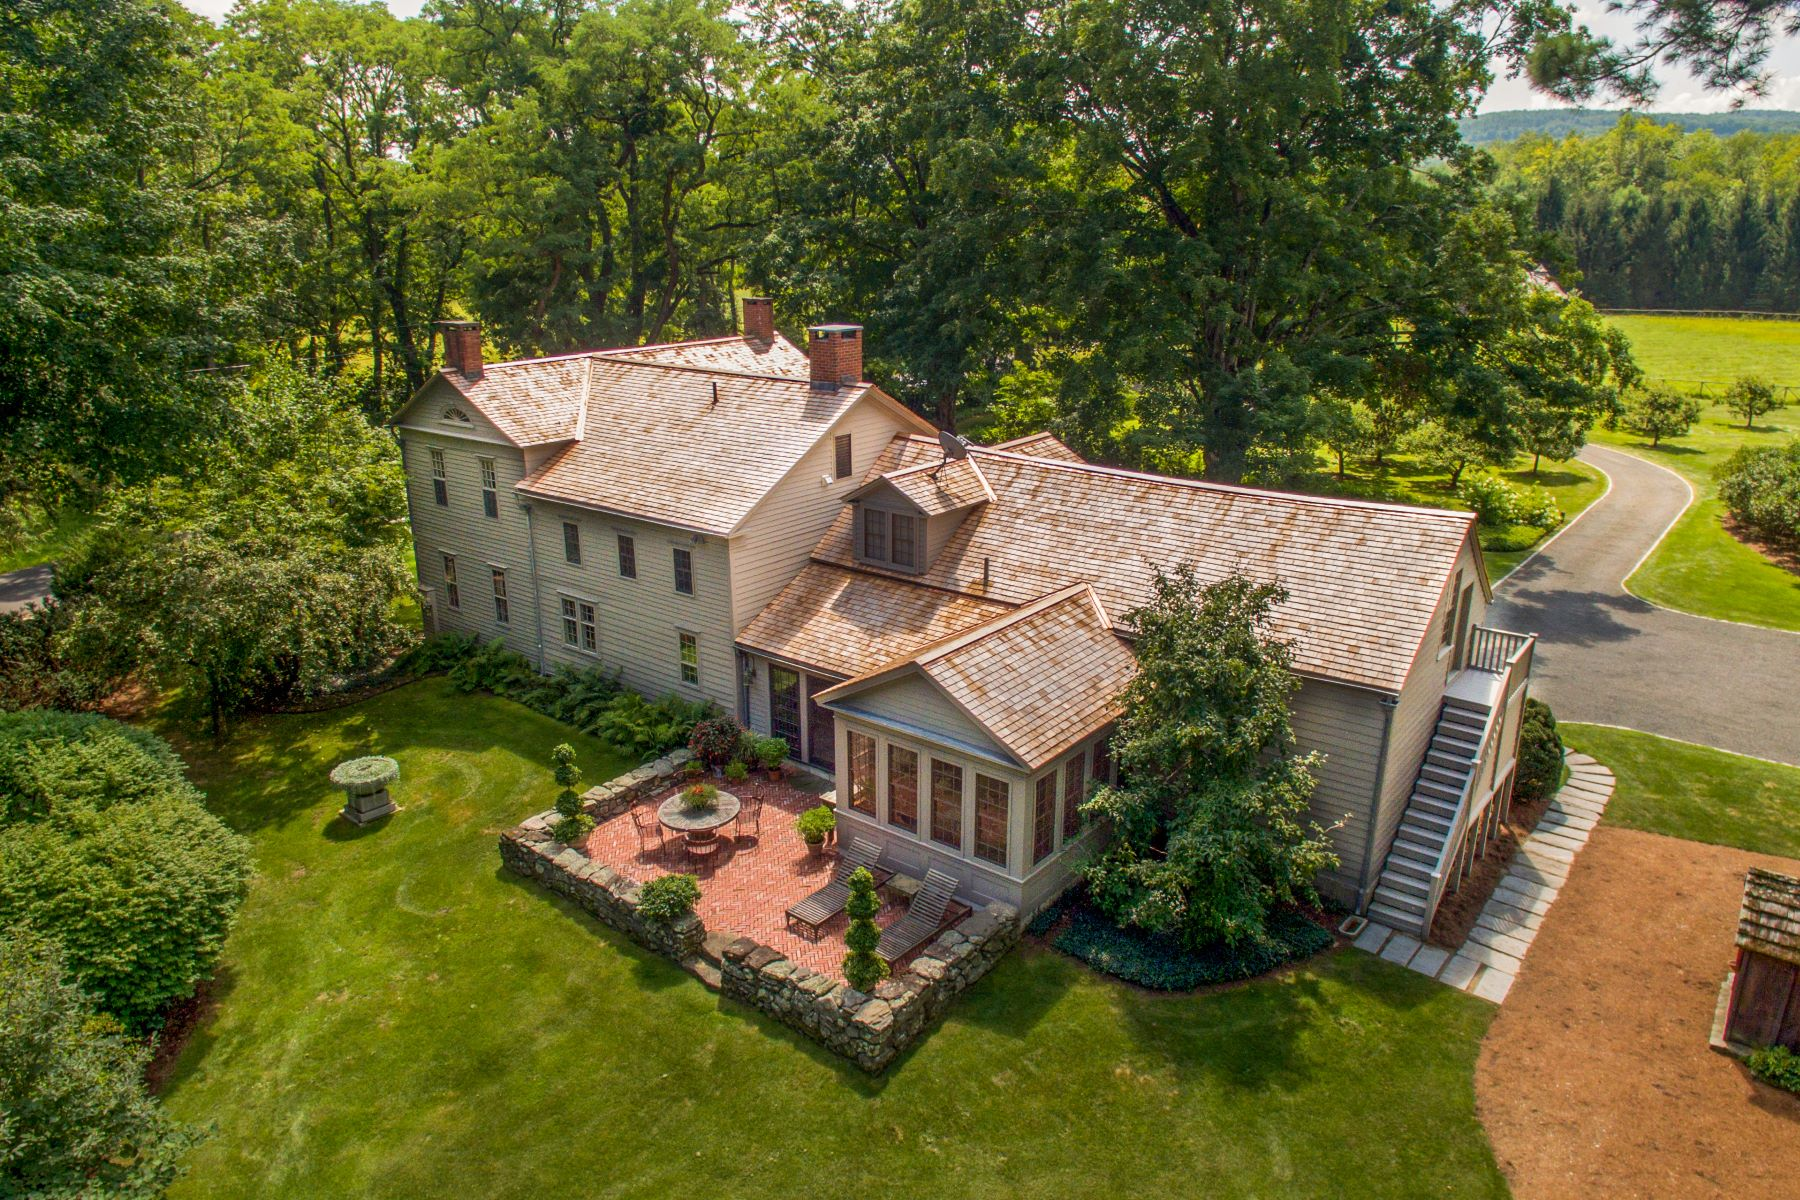 Casa Unifamiliar por un Venta en Bull Hill Farm - Restored 1780's Farmhouse & Converted Barn Country Estate 514 Rannapo Rd Sheffield, Massachusetts 01257 Estados Unidos